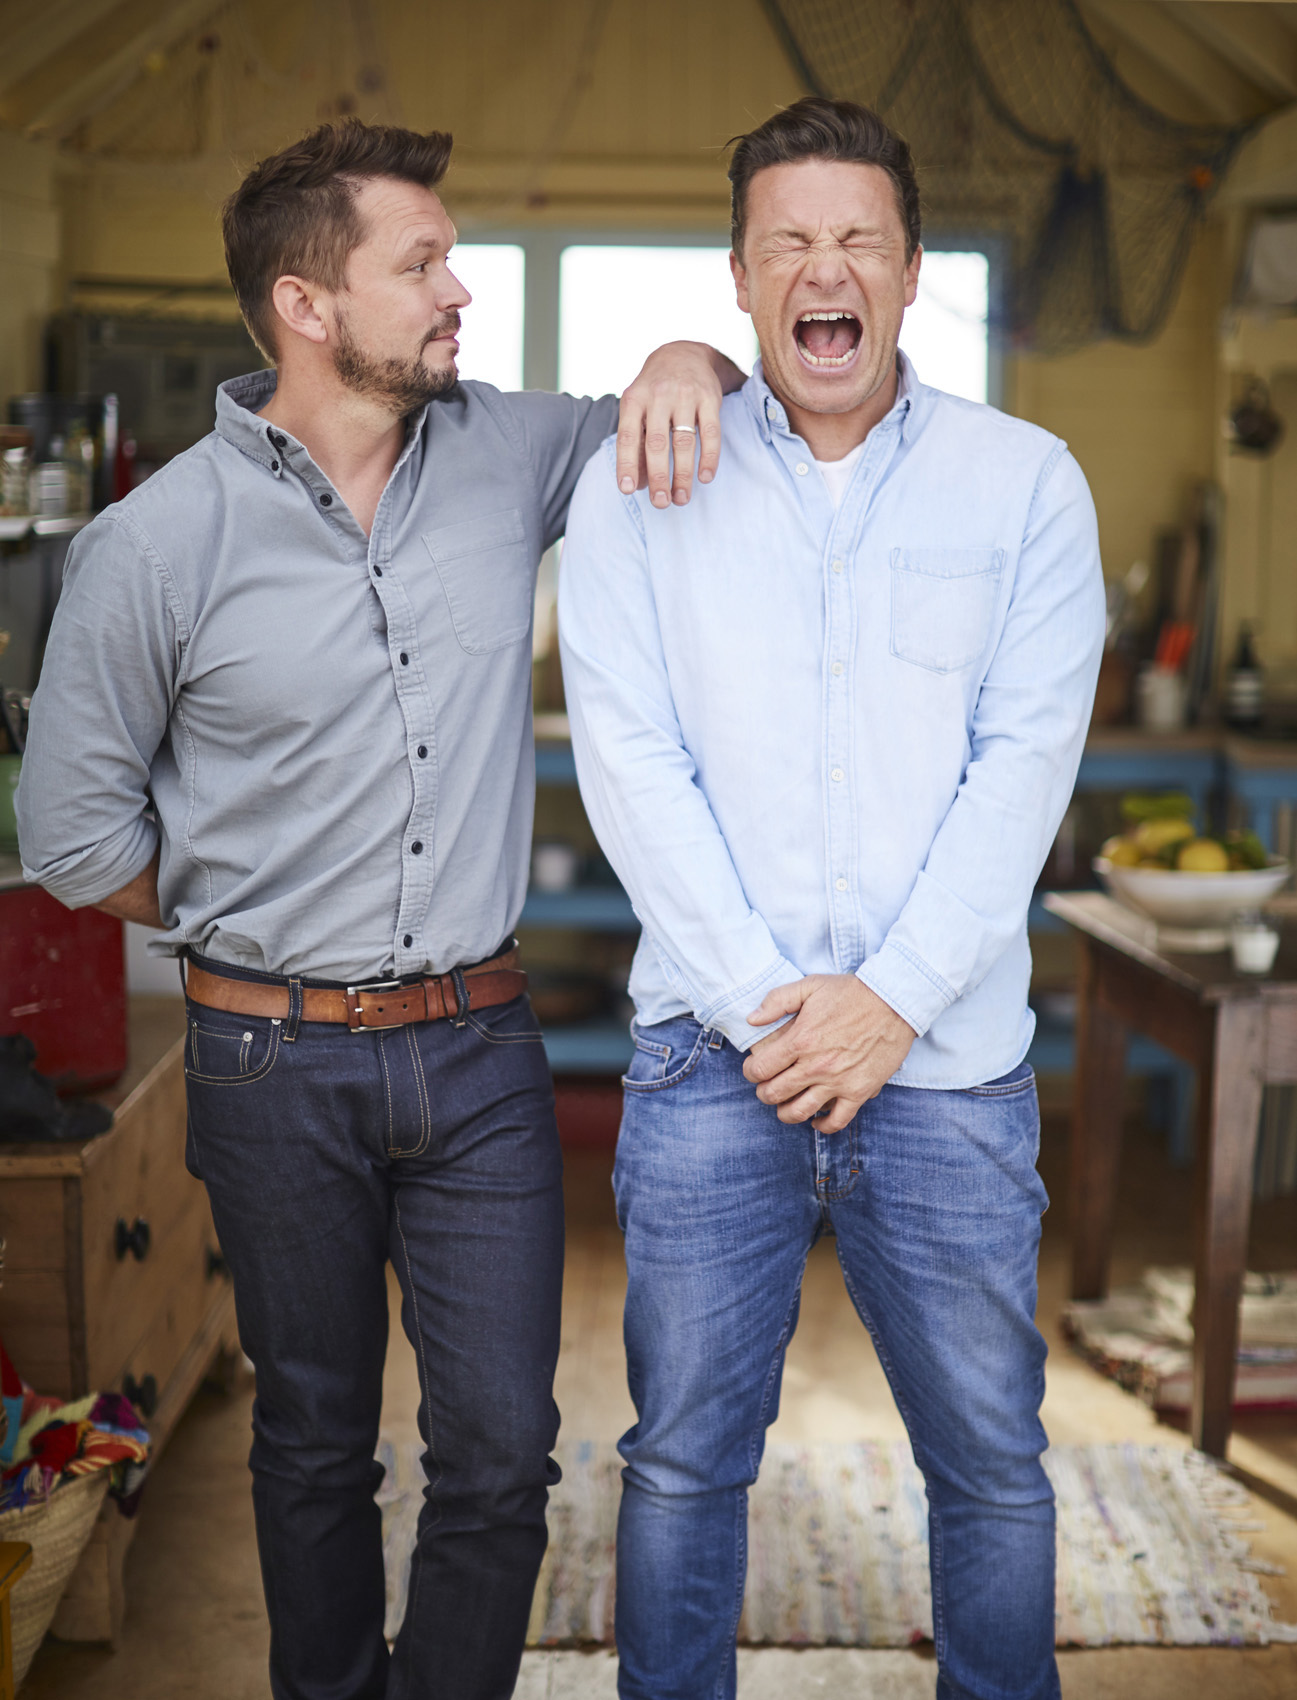 SteveRyan_Photographer_Portraits_People_FridayNightFeast_JamieOliver_JimmyDoherty_38